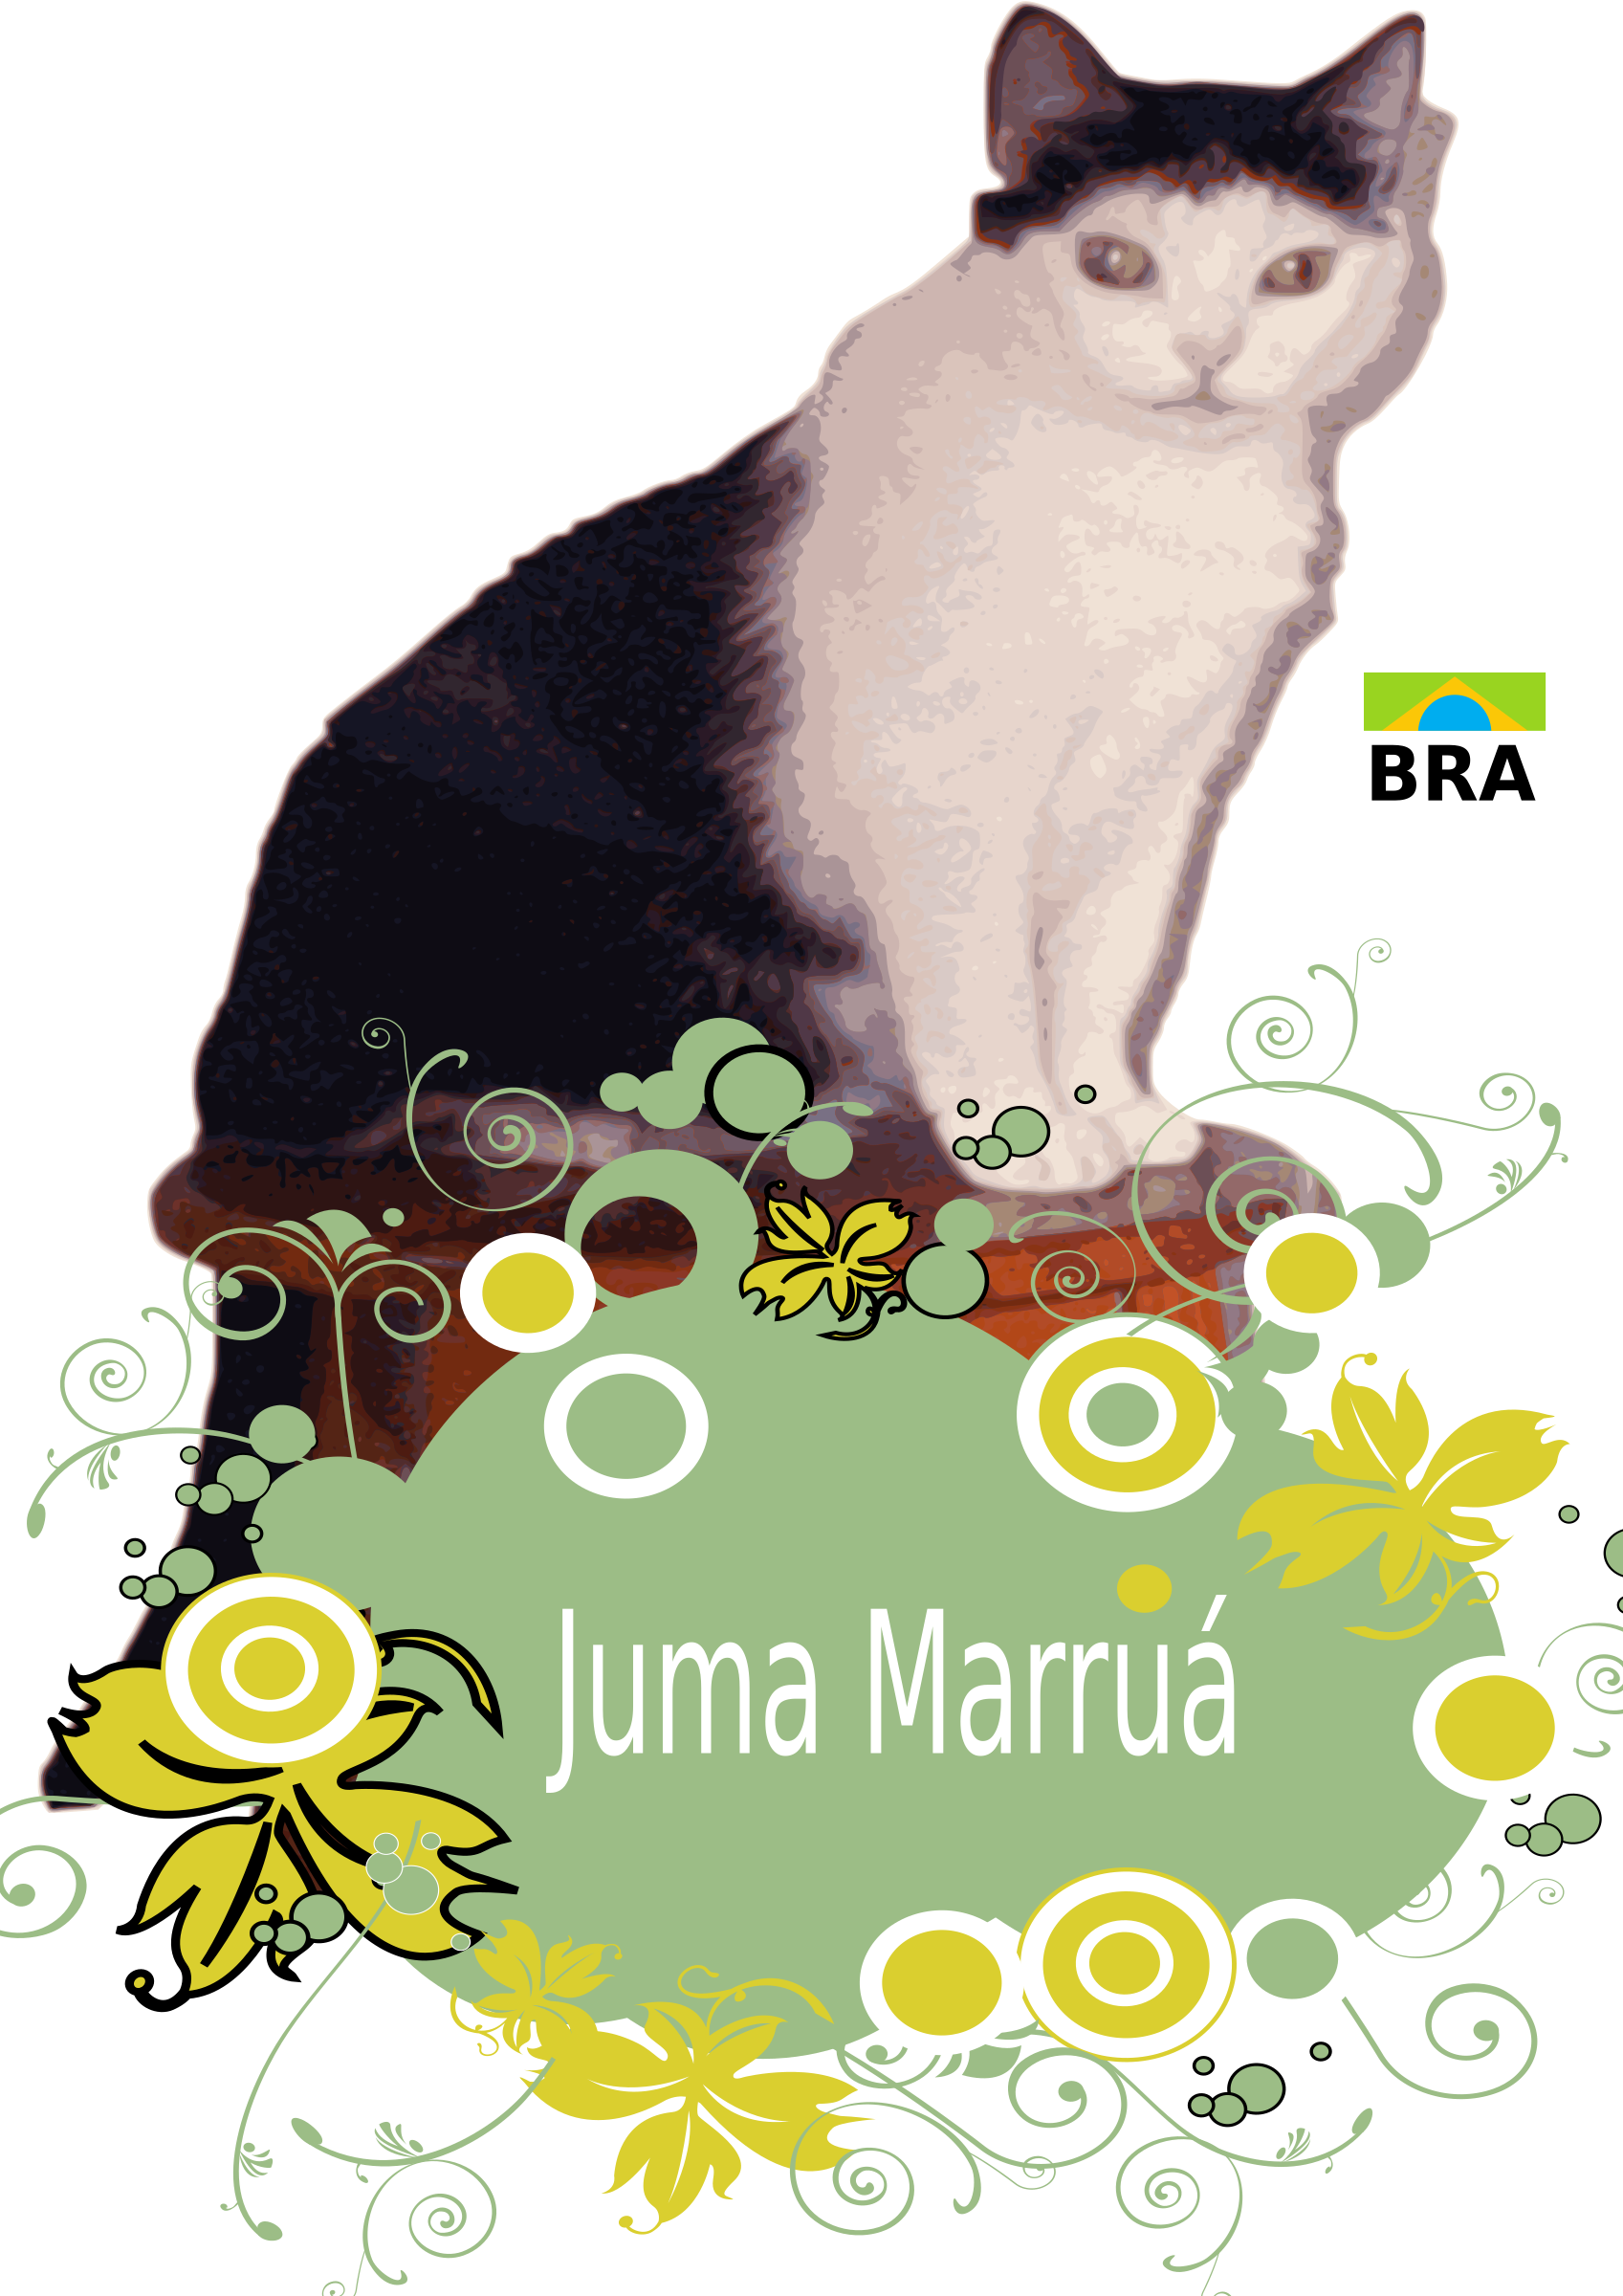 Juma Marruá with flowers by Karolus_BR